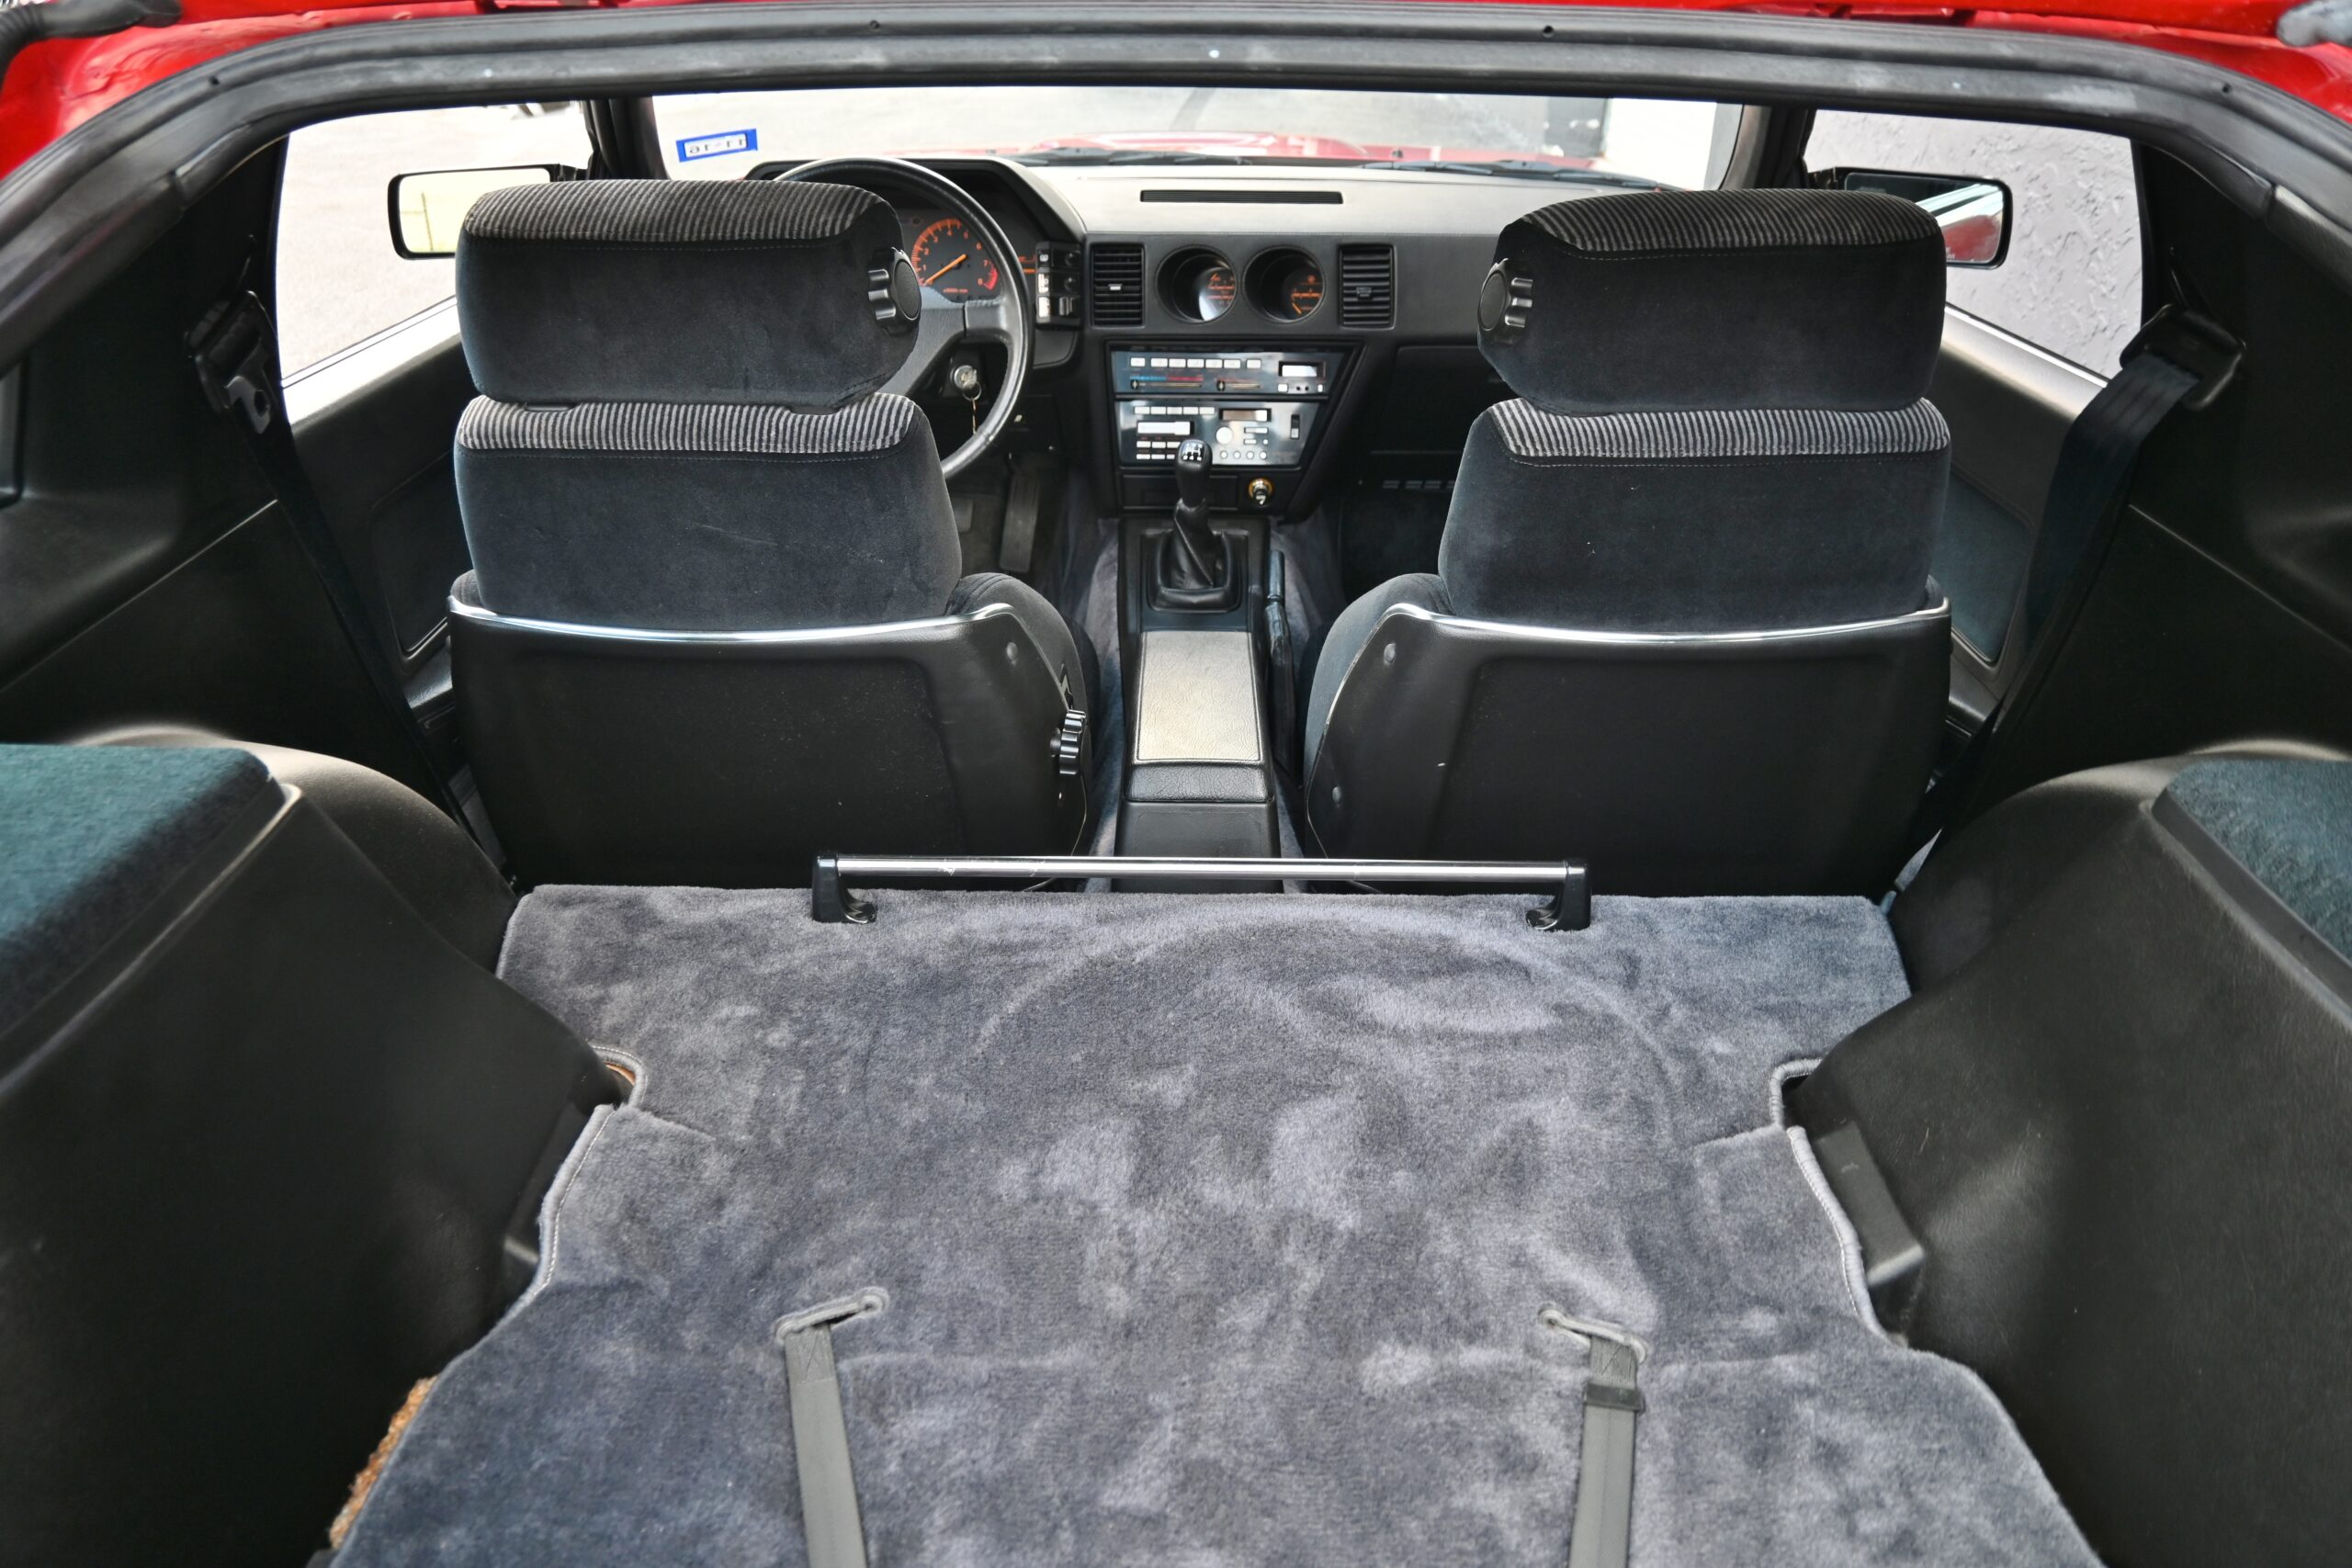 1986 Nissan 300ZX TURBO 2 Owner -ONLY 21K ORIGINAL MILES-Original Paint- 5 Speed Manual-Timing belt done